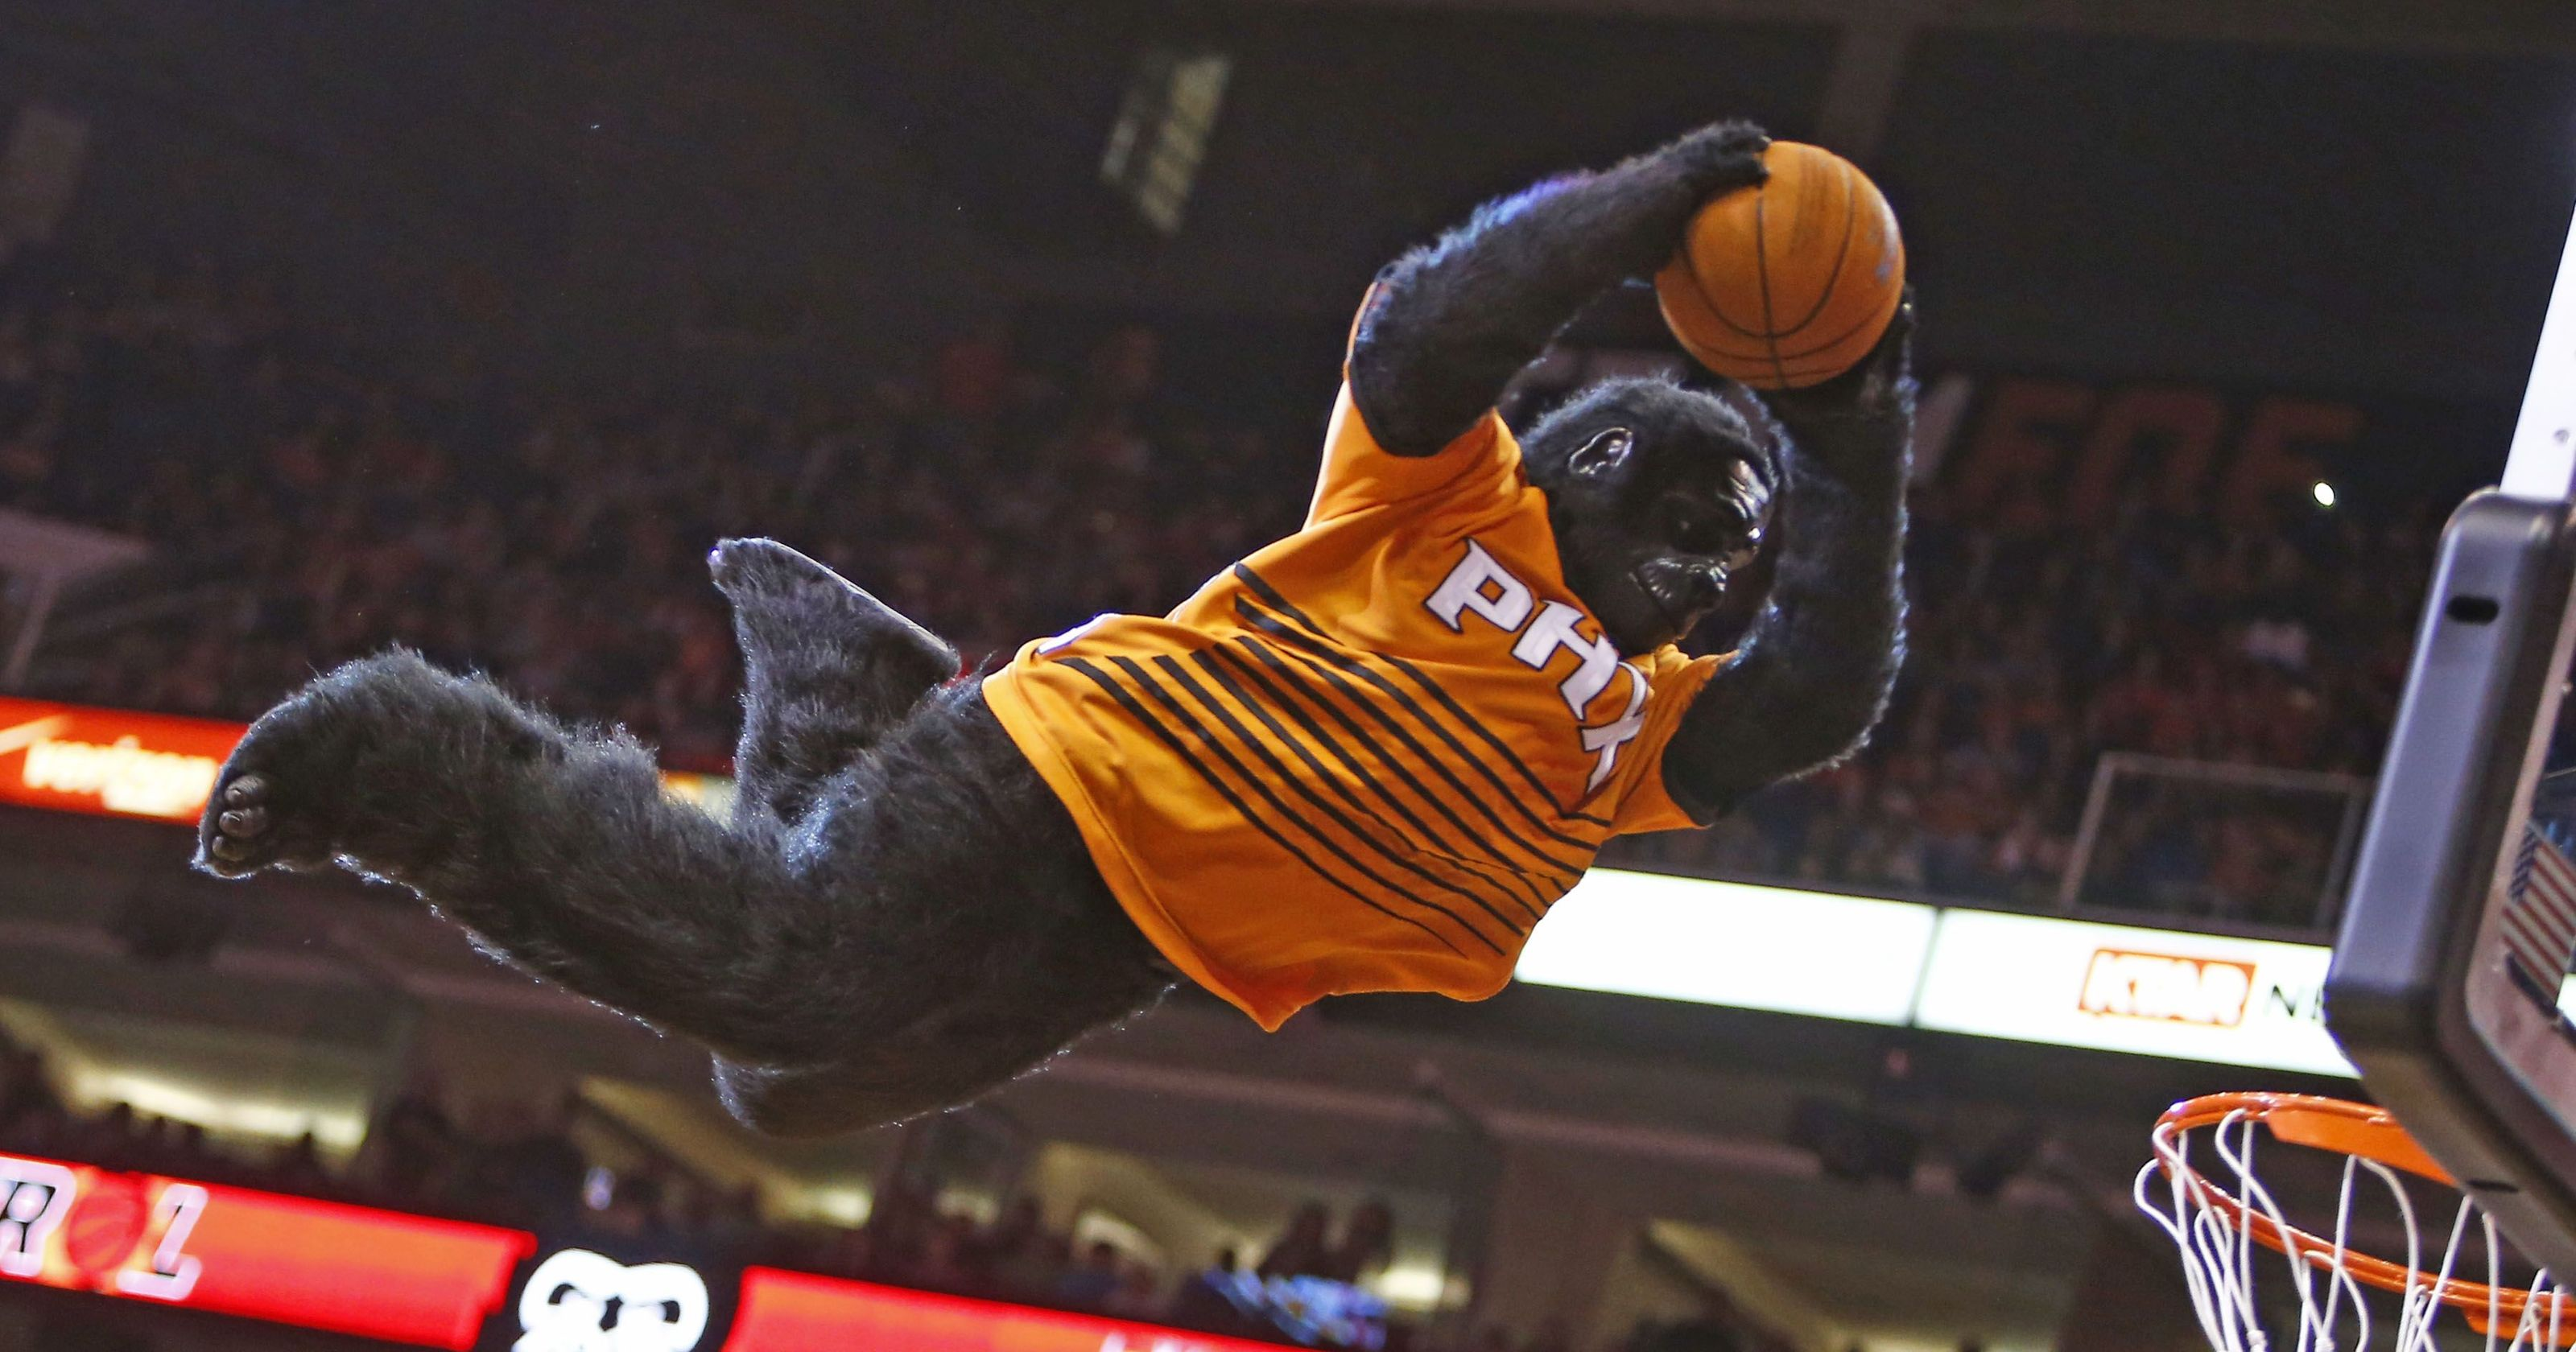 Phoneix Suns Gorilla is one of the coolest mascots in Basketball history